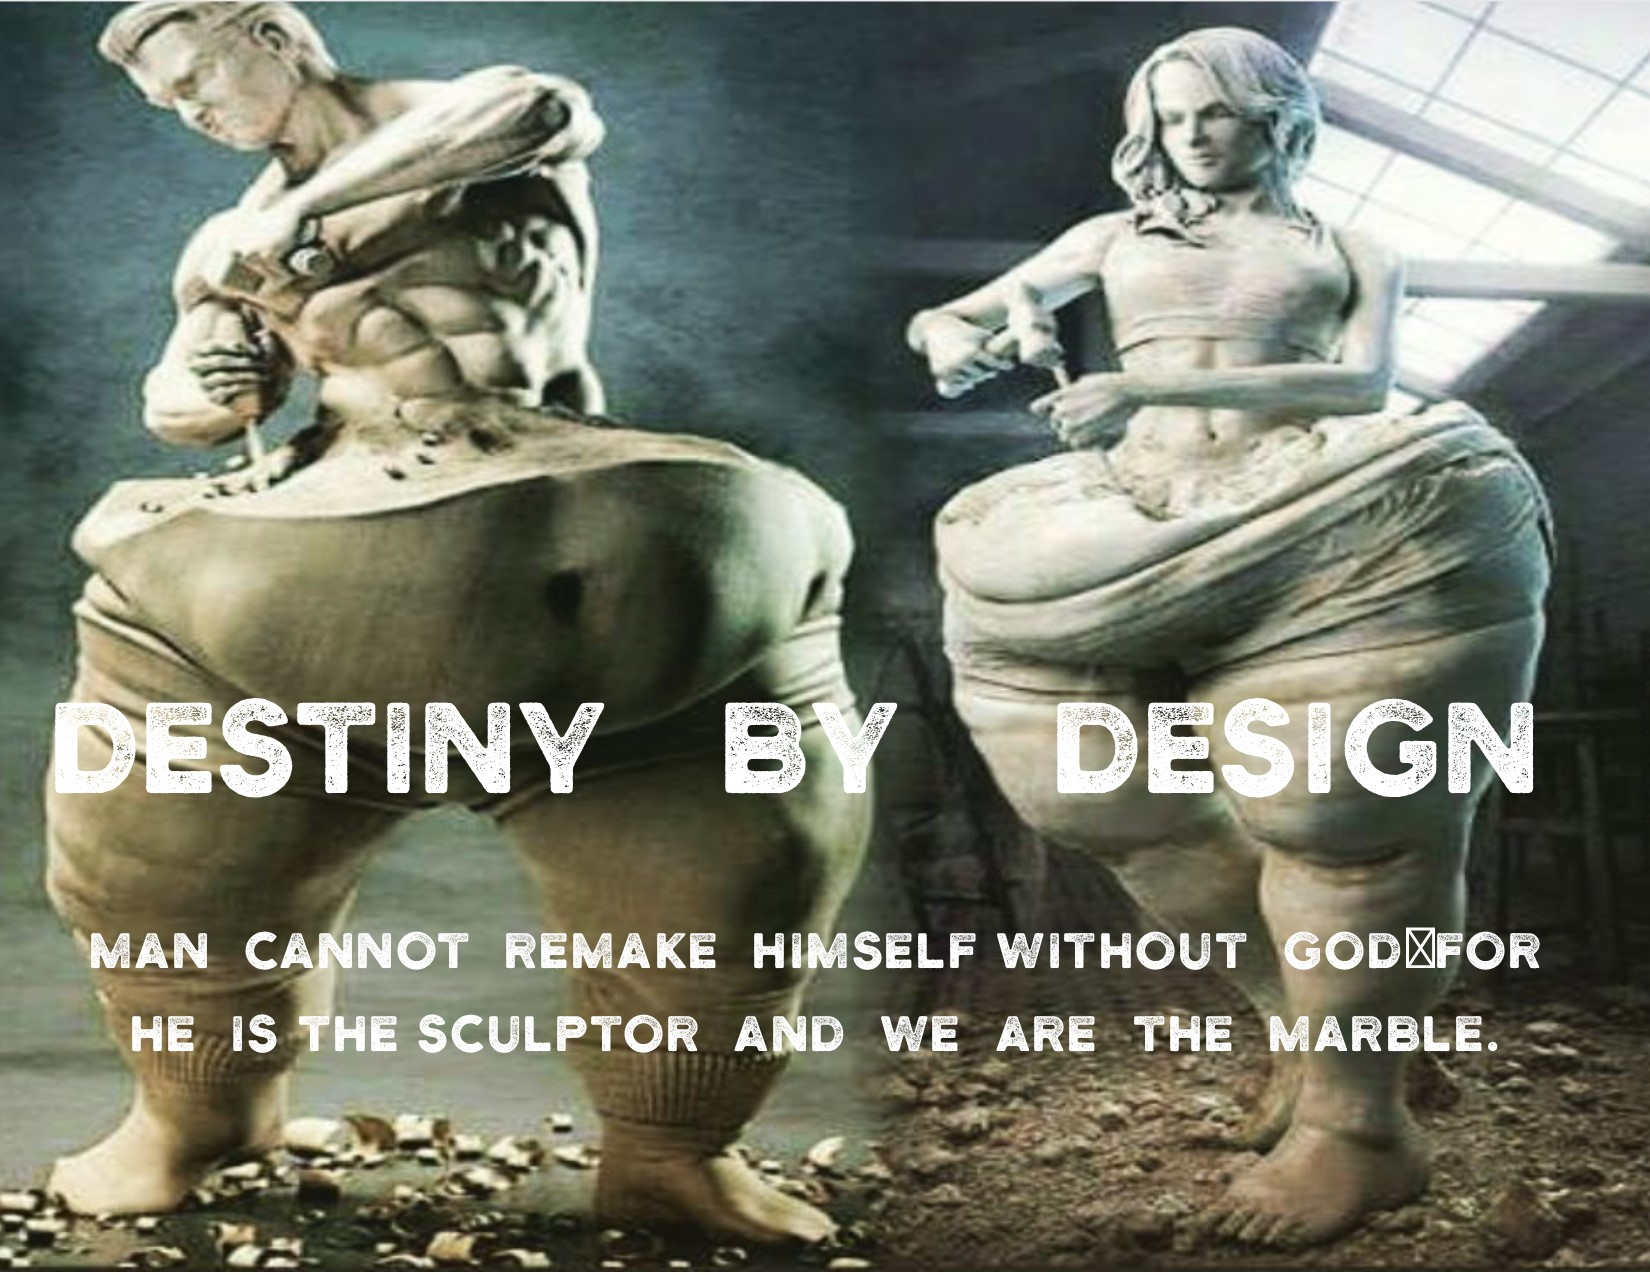 Destiny By Design.jpg